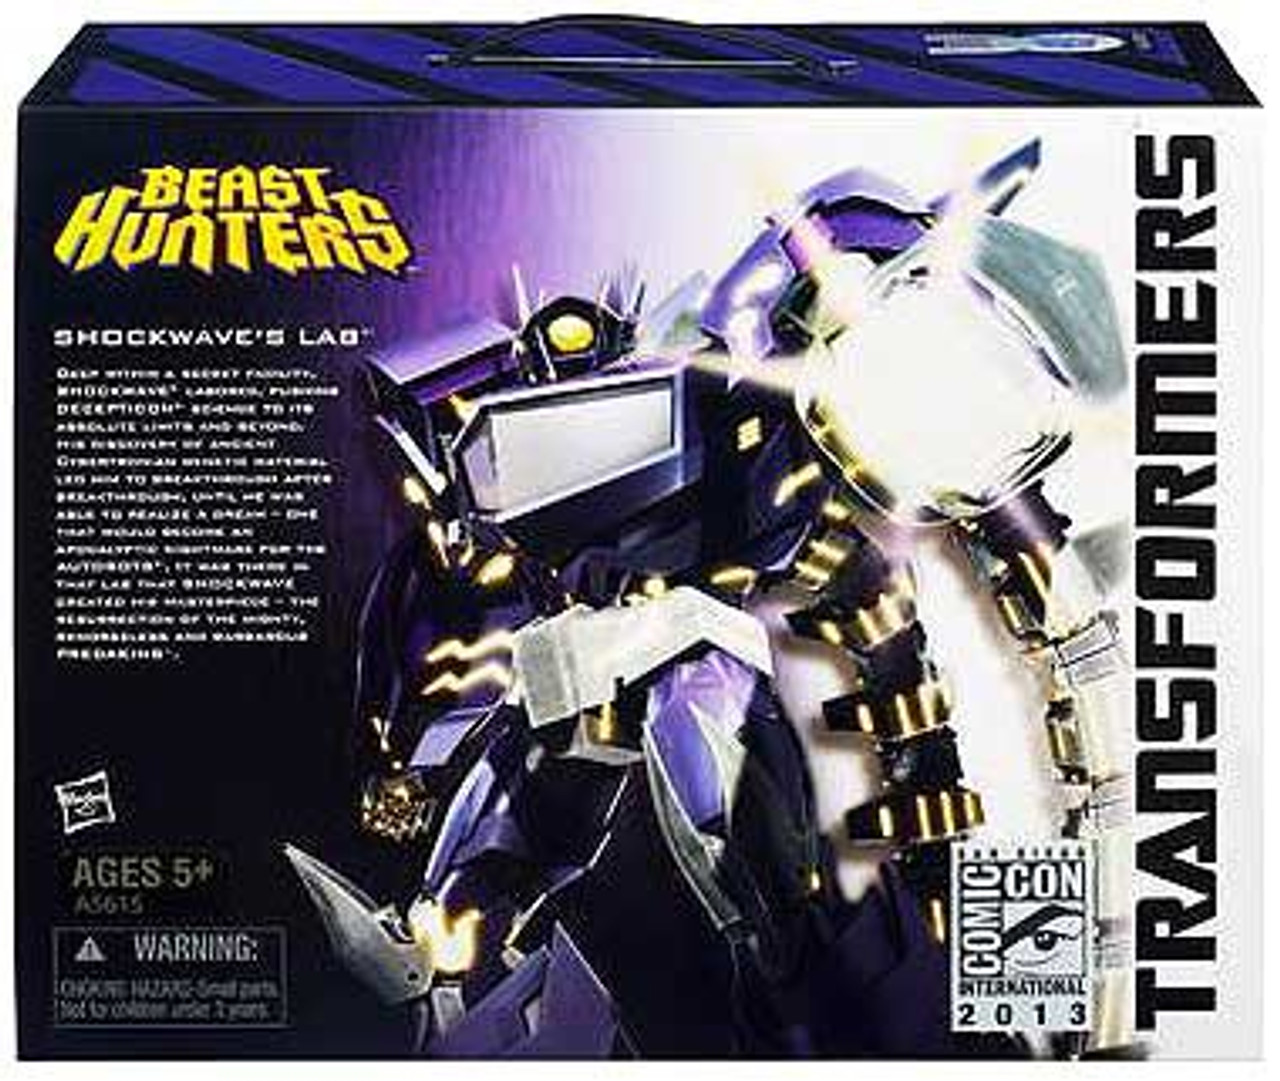 Transformers Beast Hunters Exclusives Shockwave's Lab Exclusive Action Figure